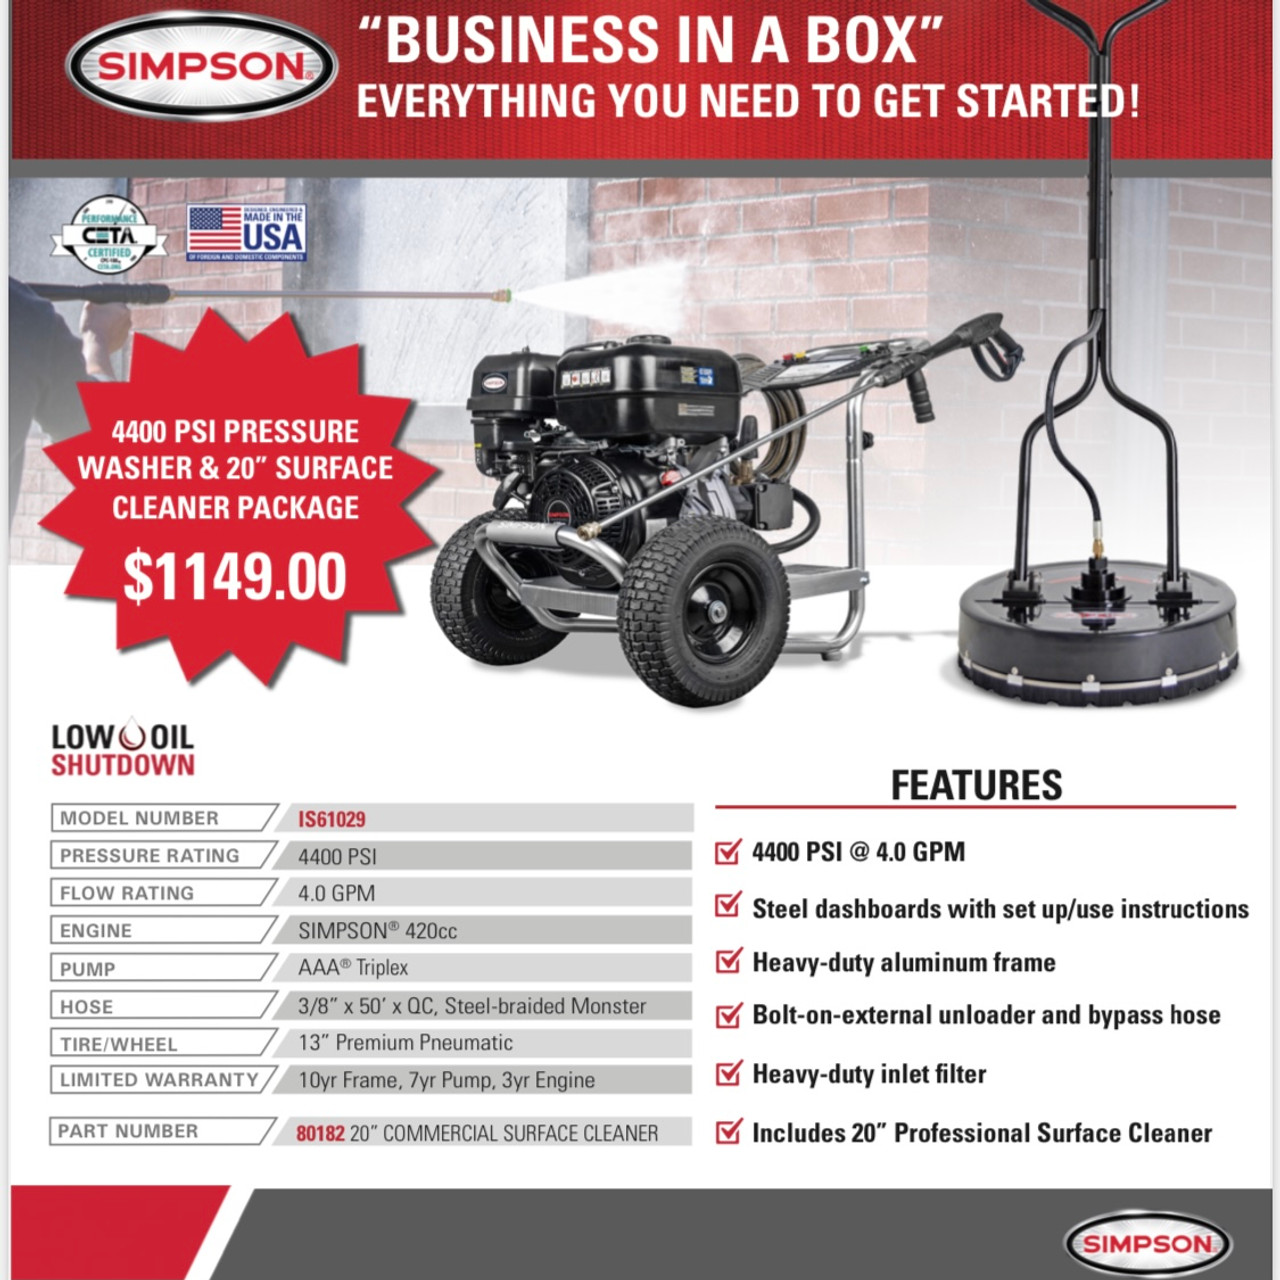 Business In A Box by Simpson Pressure Washers